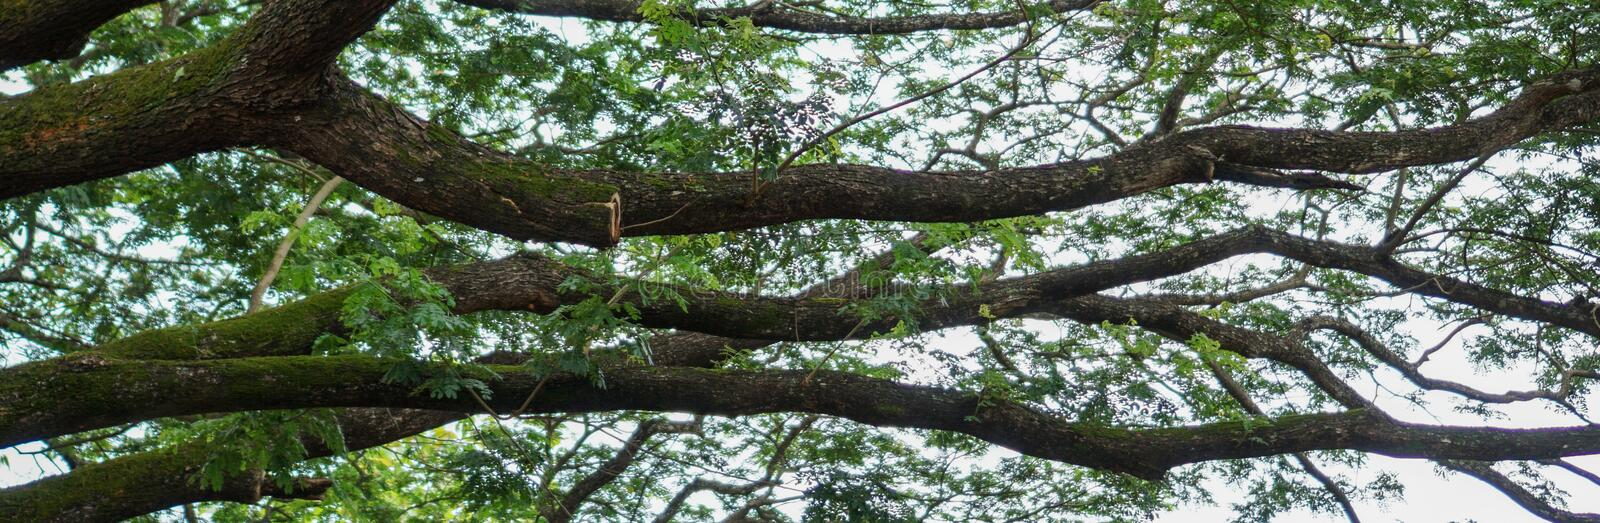 Tree banner with large branches extending out stock image